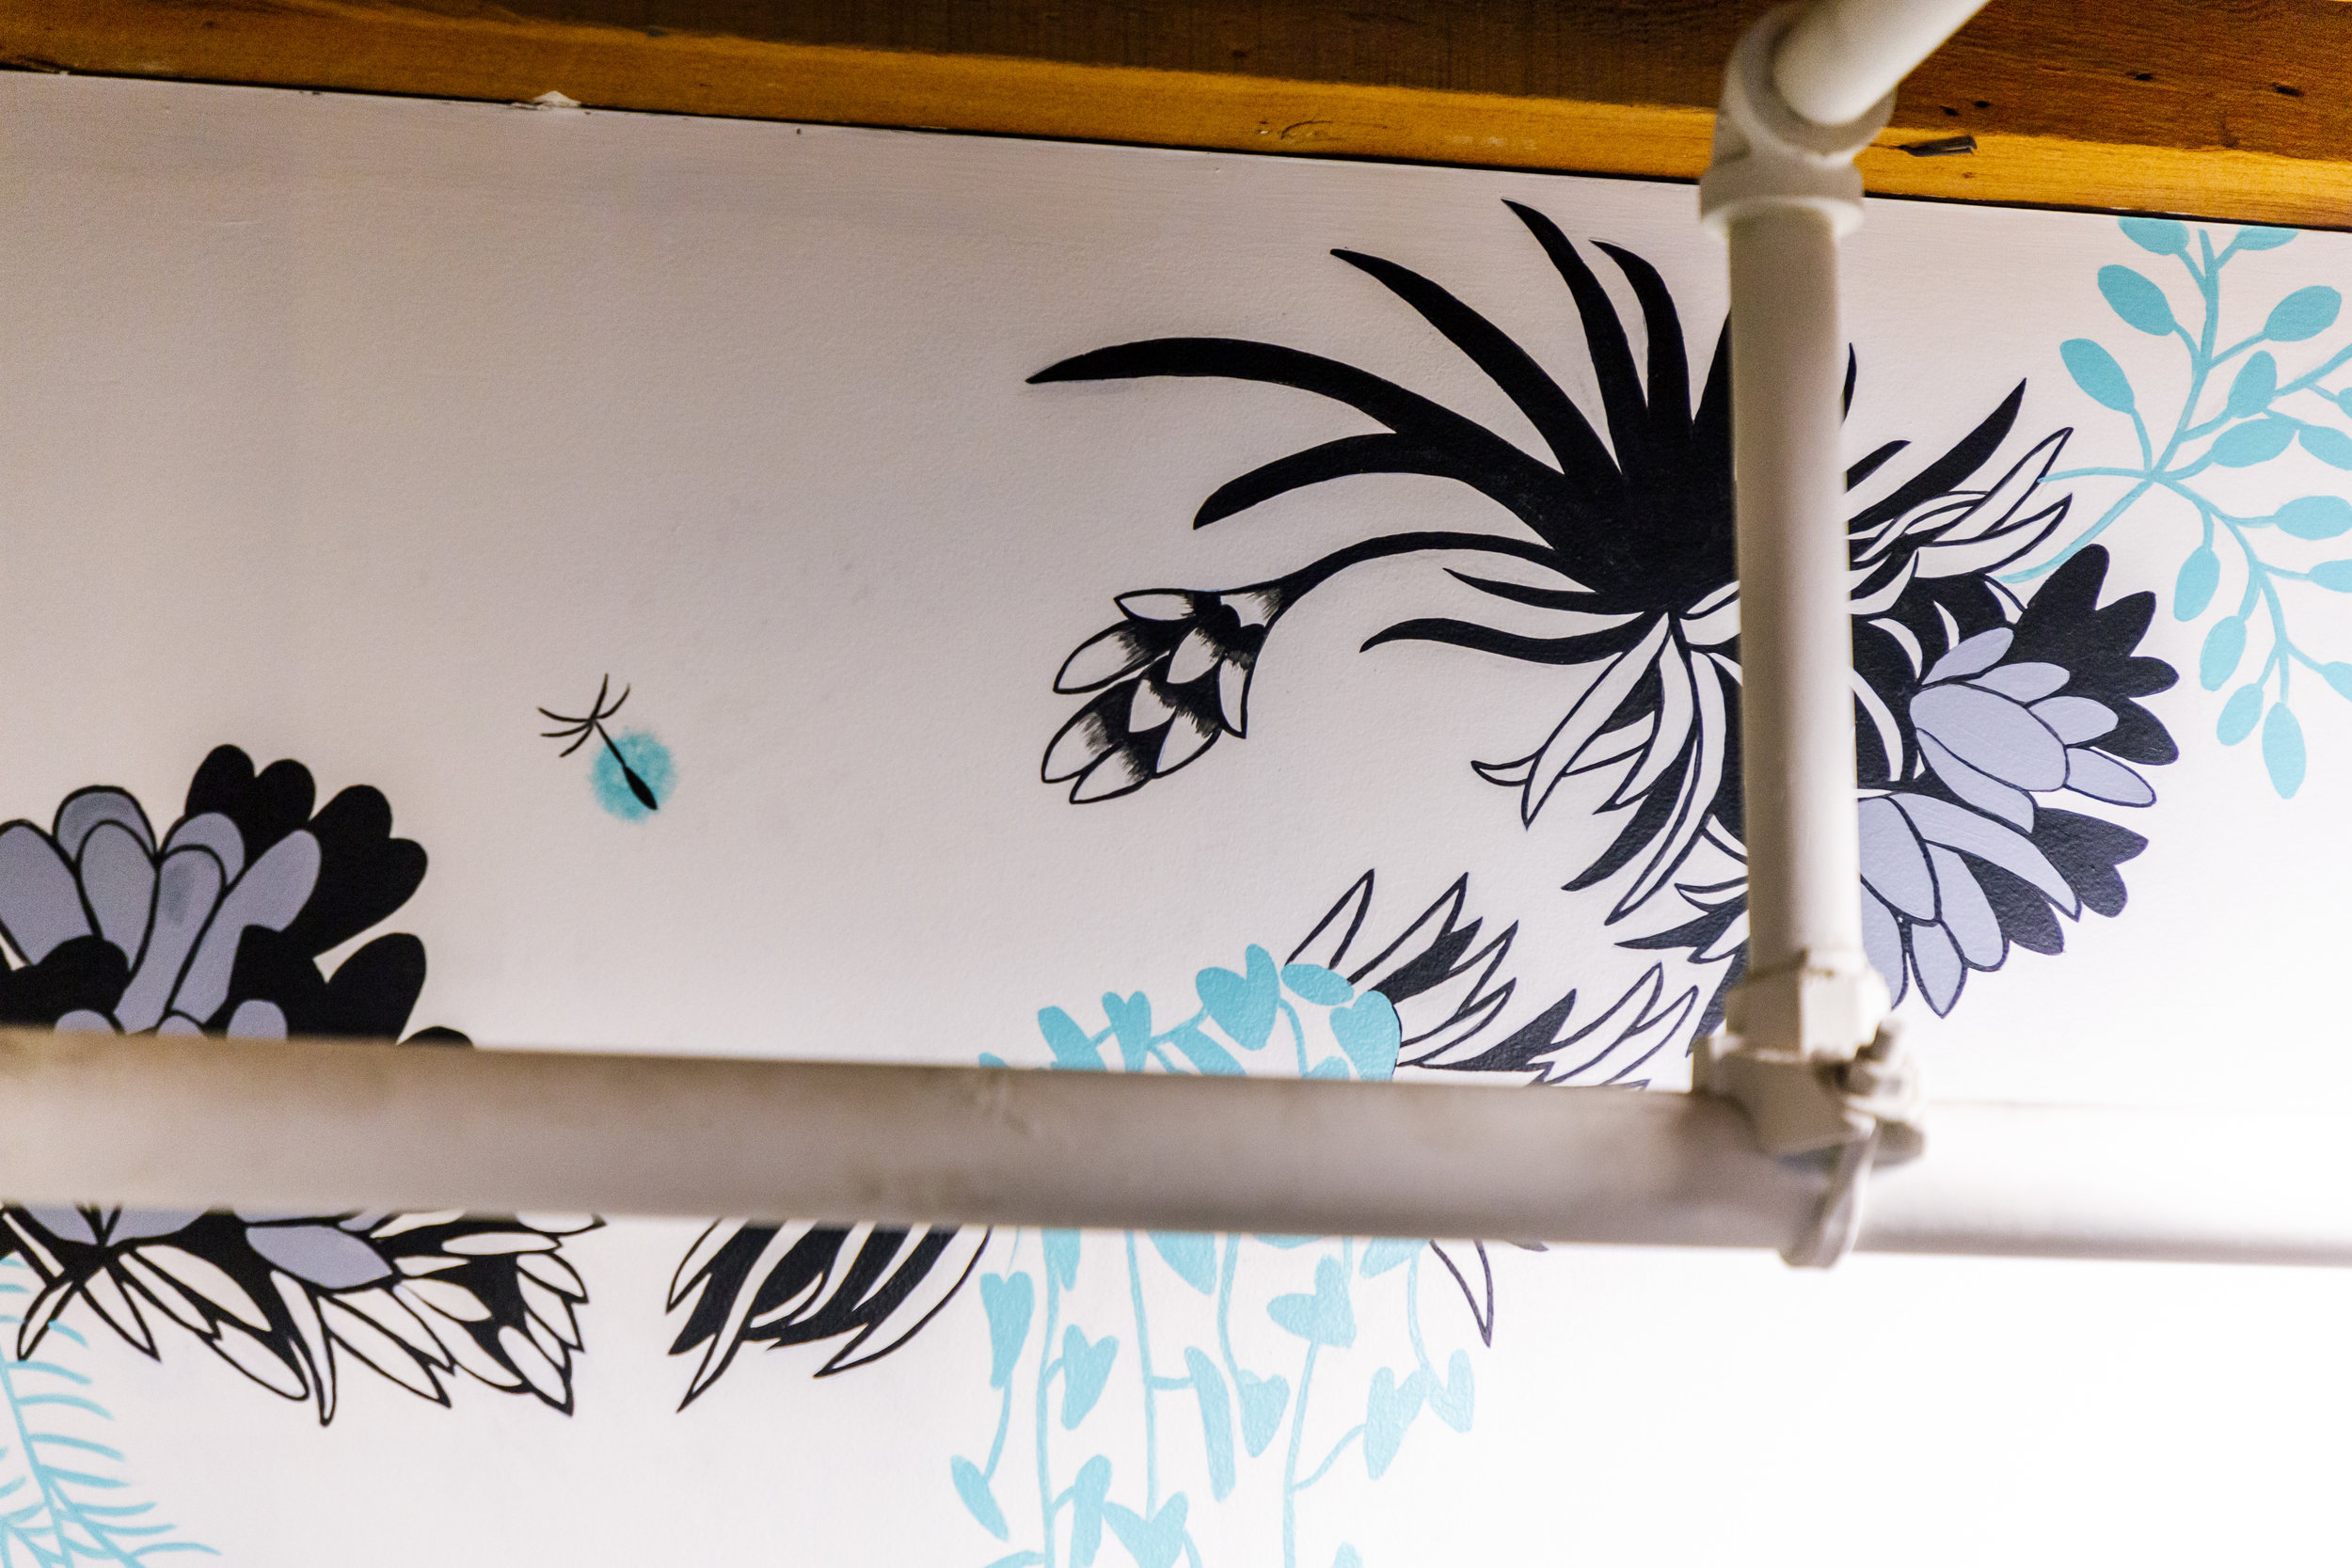 Thrive Mural Residency - HQ 25.jpg